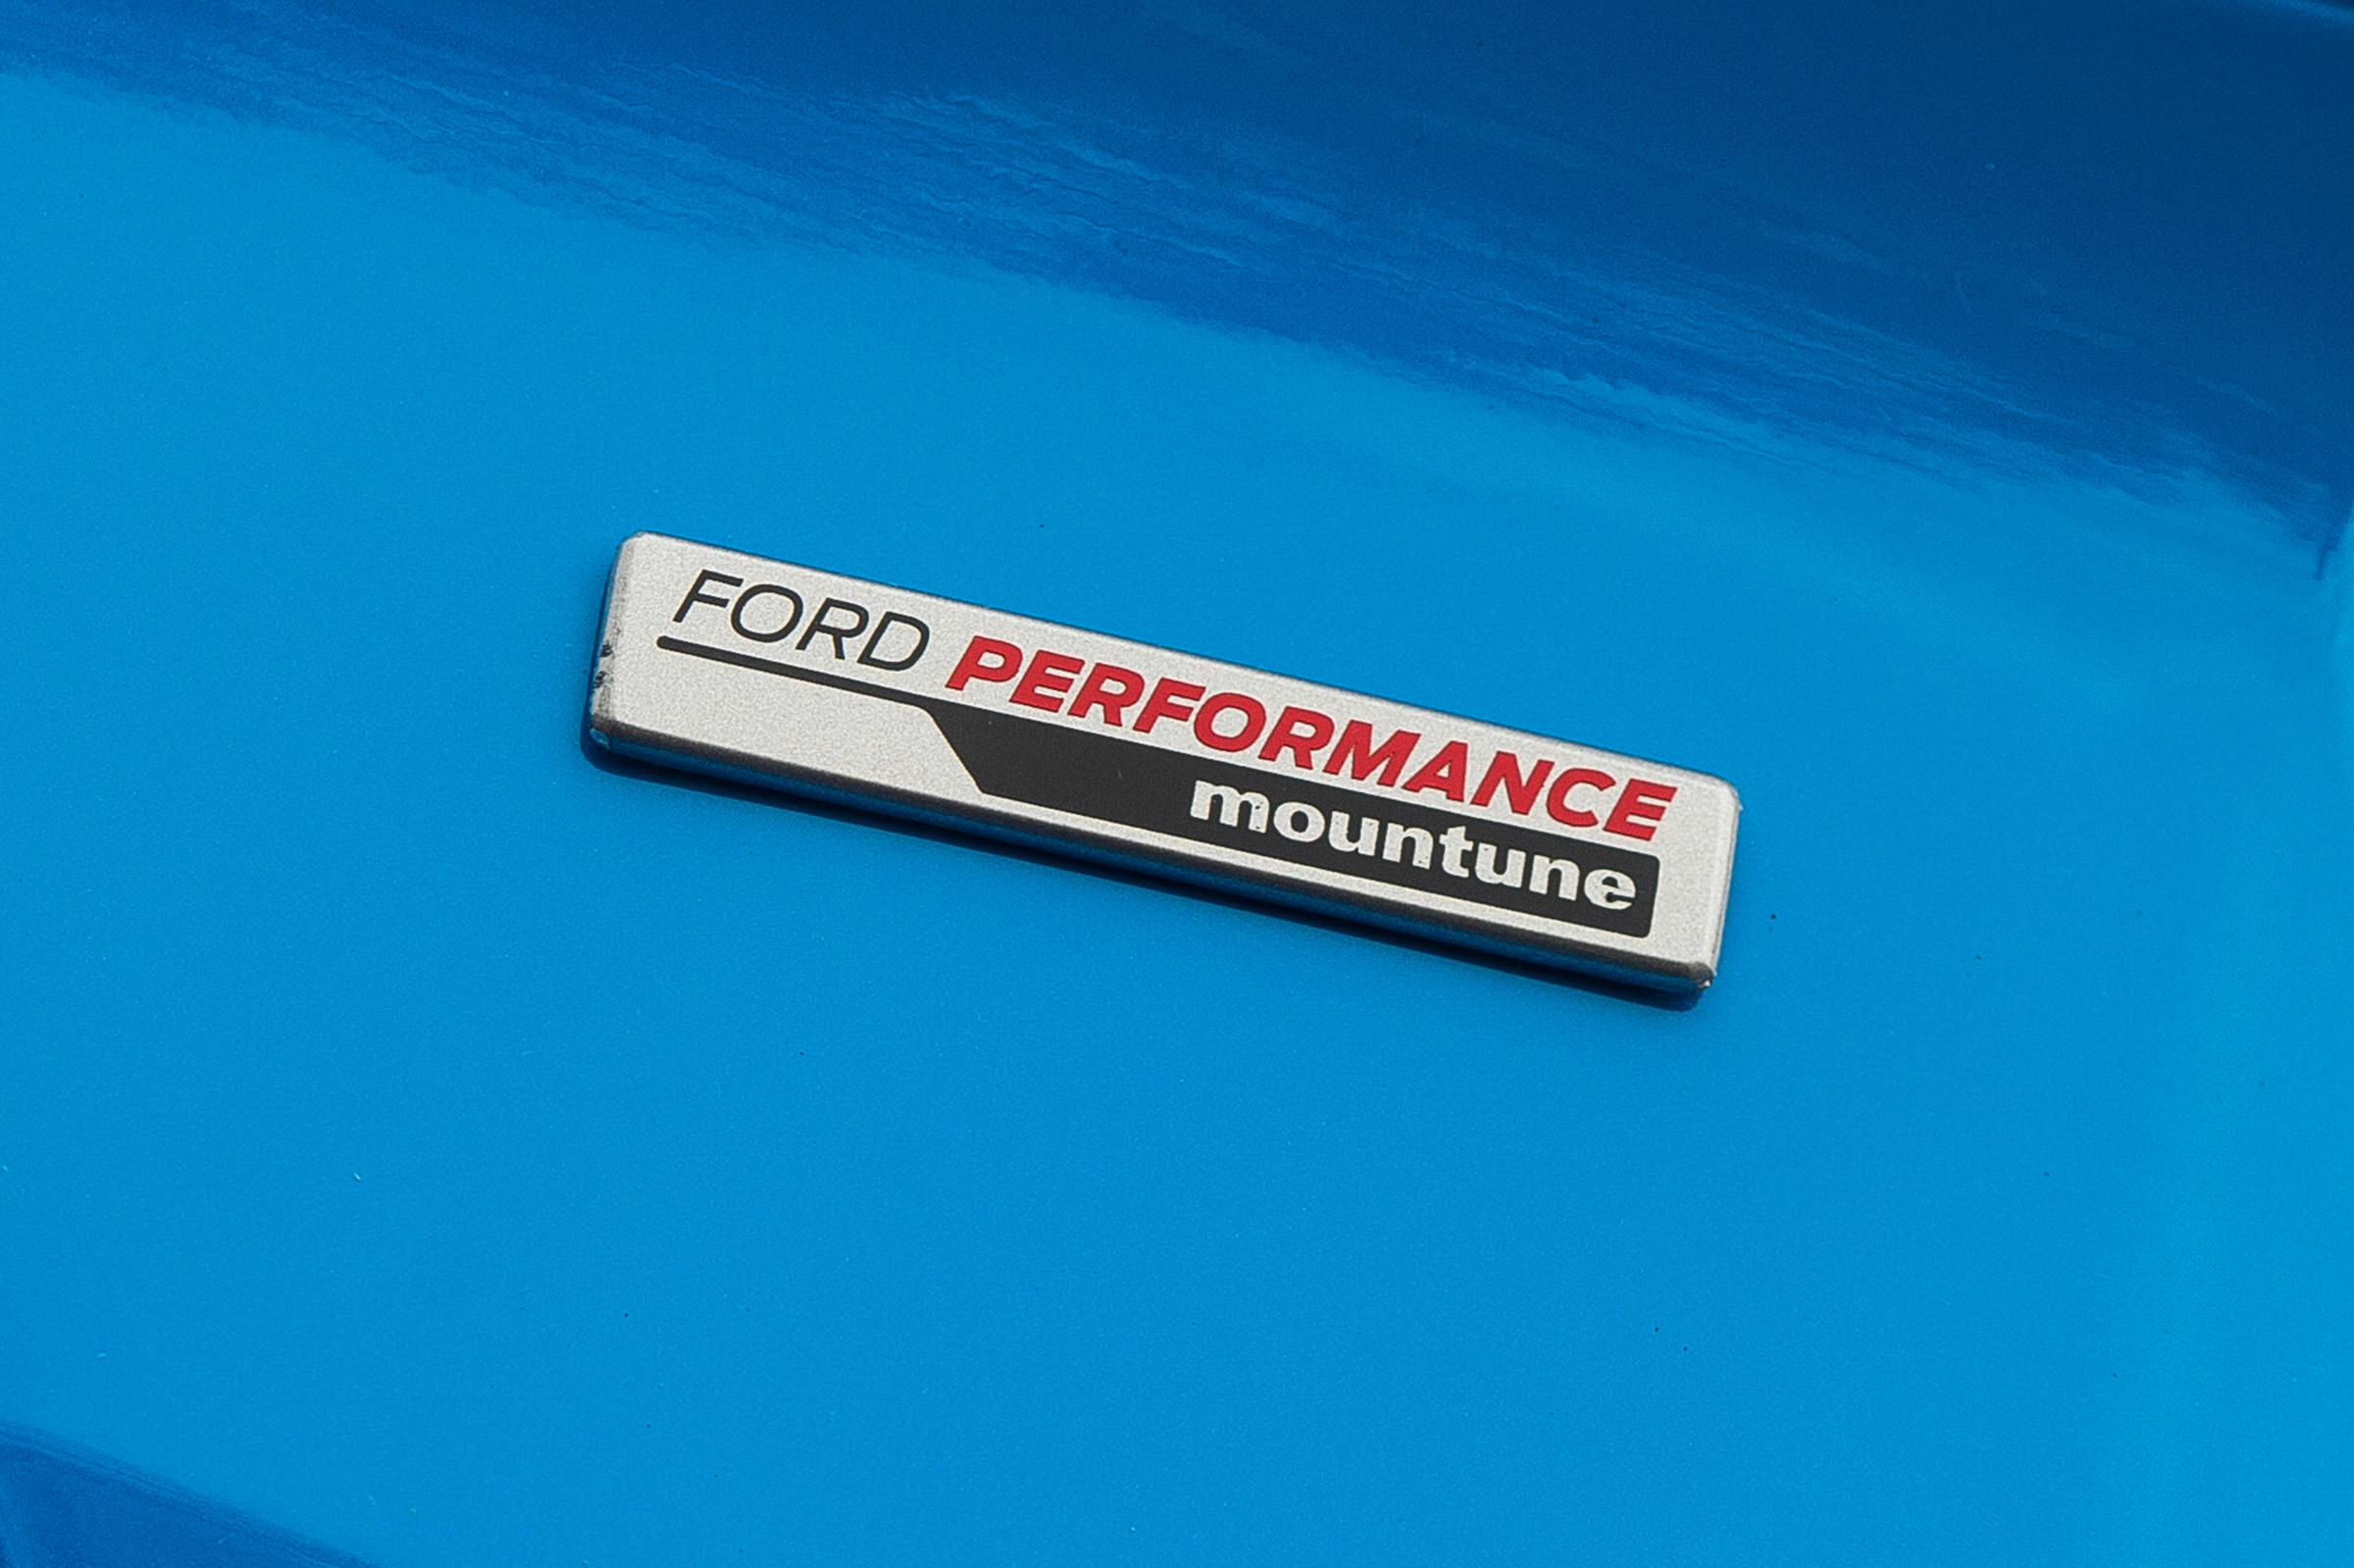 2017 Ford Focus RS Exterior View Emblem (View 3 of 23)